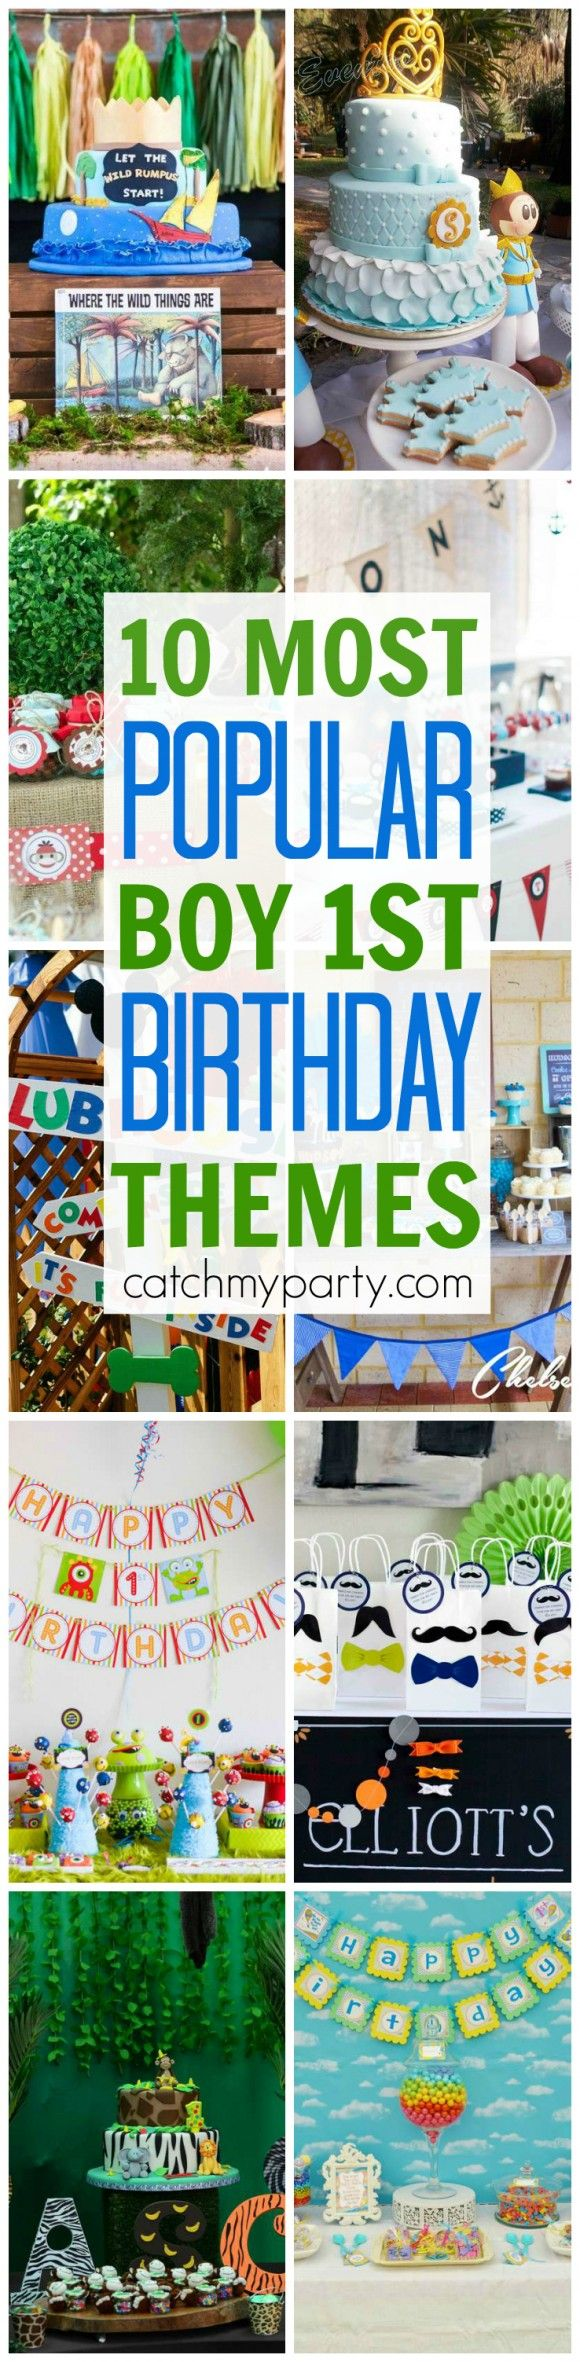 10 Most Popular Boy 1st Birthday Party Themes First Birthday Theme Boy Birthday Themes For Boys 1st Birthday Party Themes